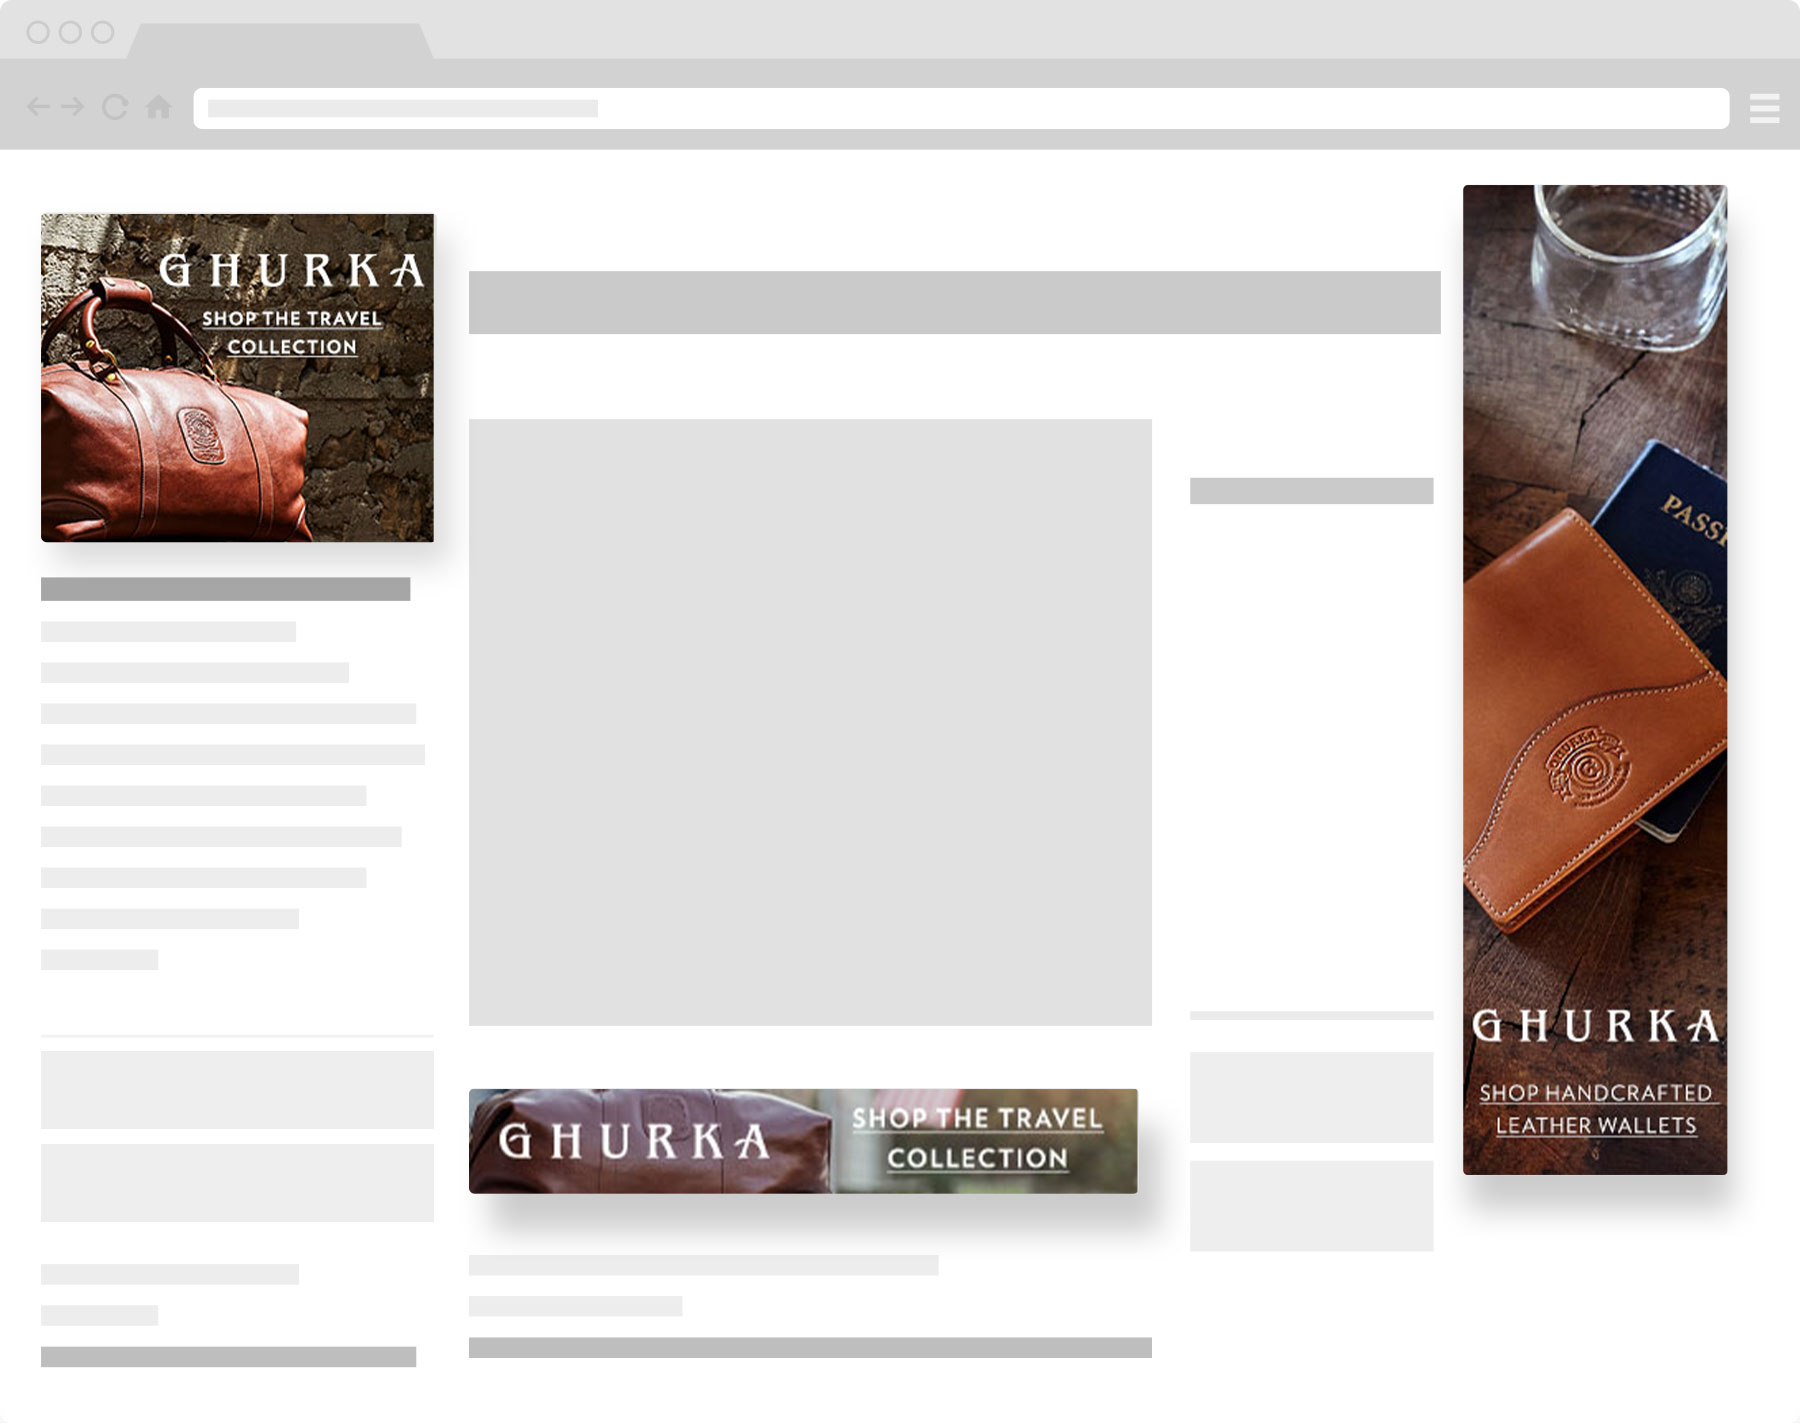 ghurka display ads